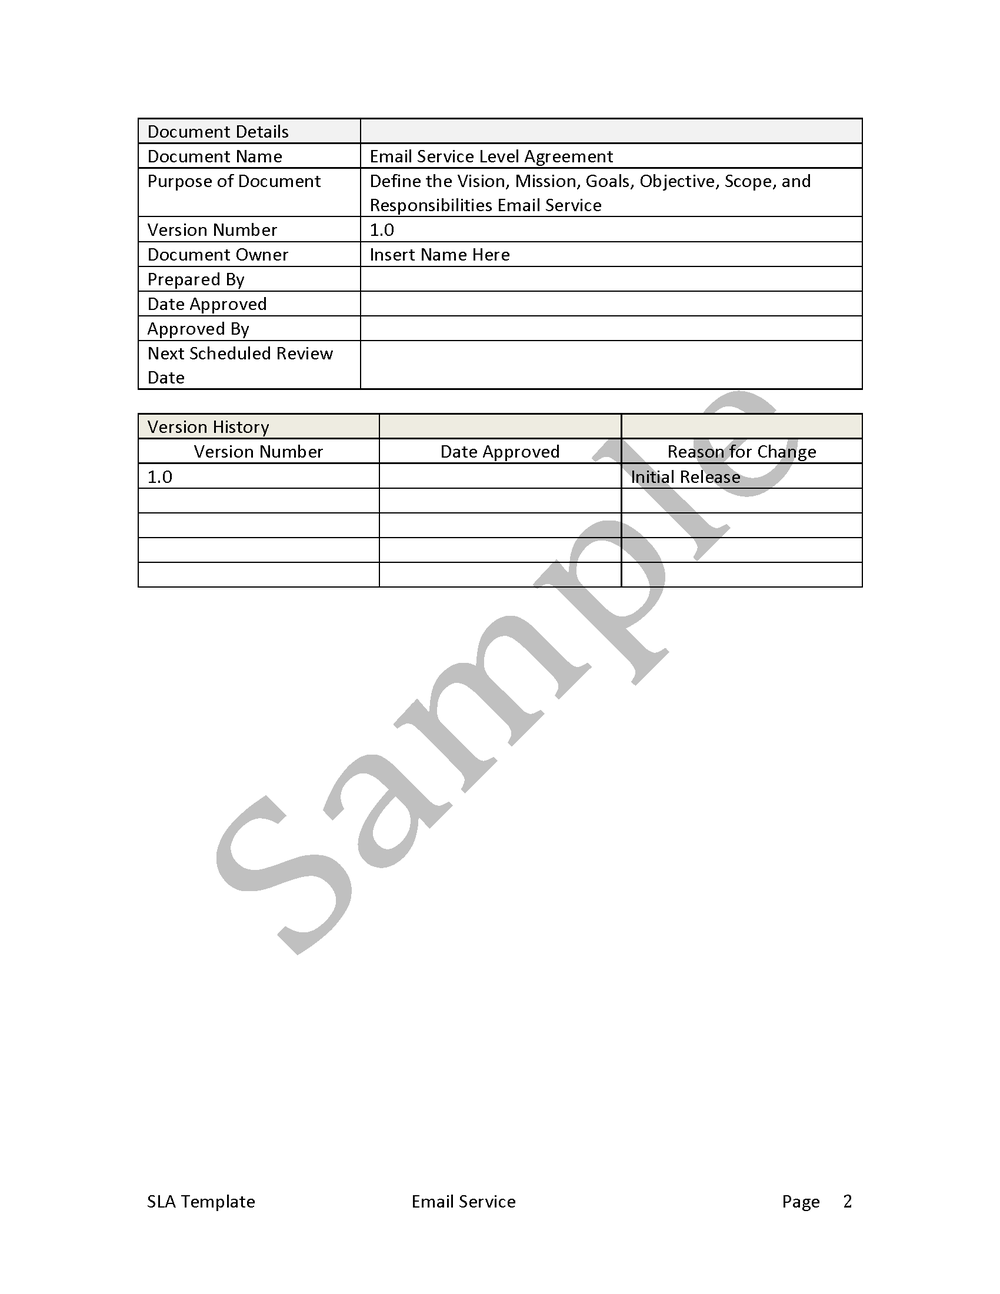 ... Service Level Agreement Template Ver 1.0_Page_02.png ...